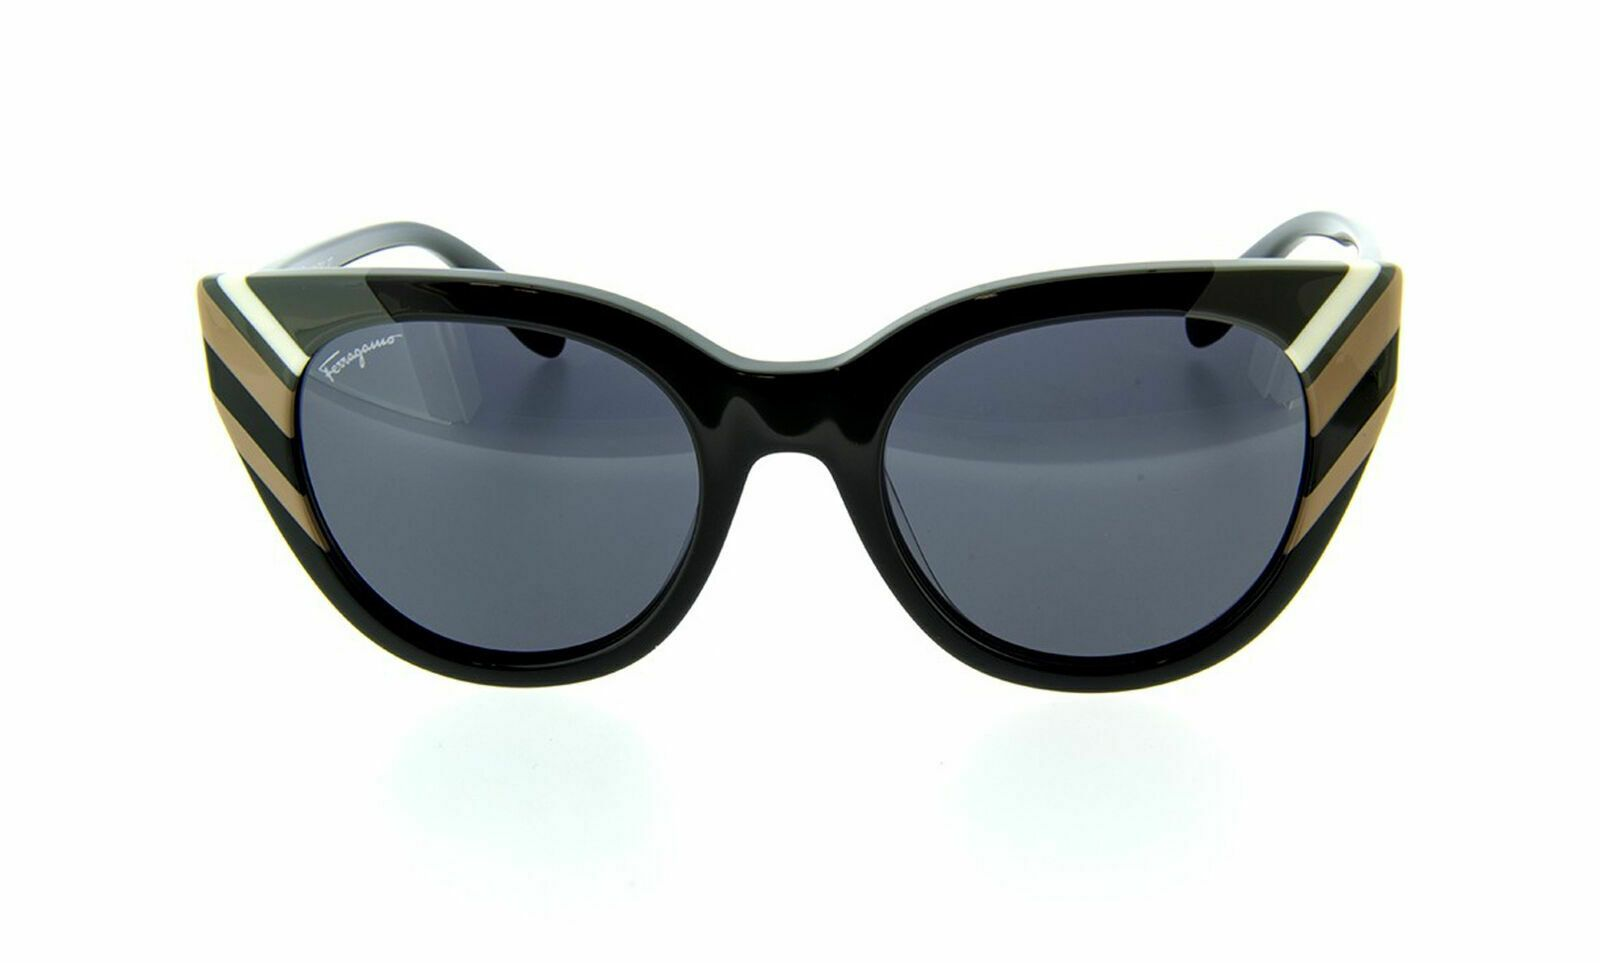 Ferragamo SF867S Women Sunglasses Black NEW AUTHENTIC 50mm - Mydesigneroptic